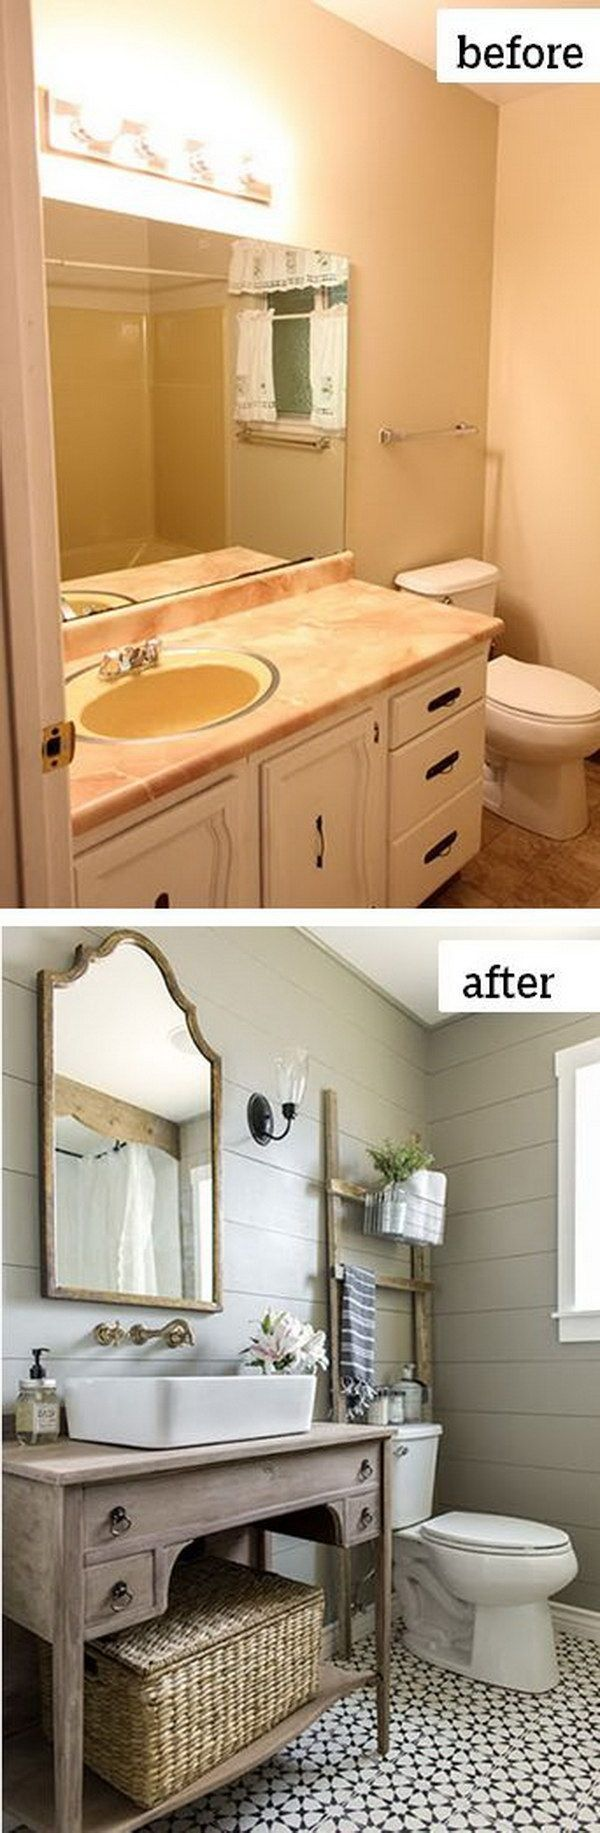 Before and After Makeovers: 23 Most Beautiful Bathroom Remodeling Ideas